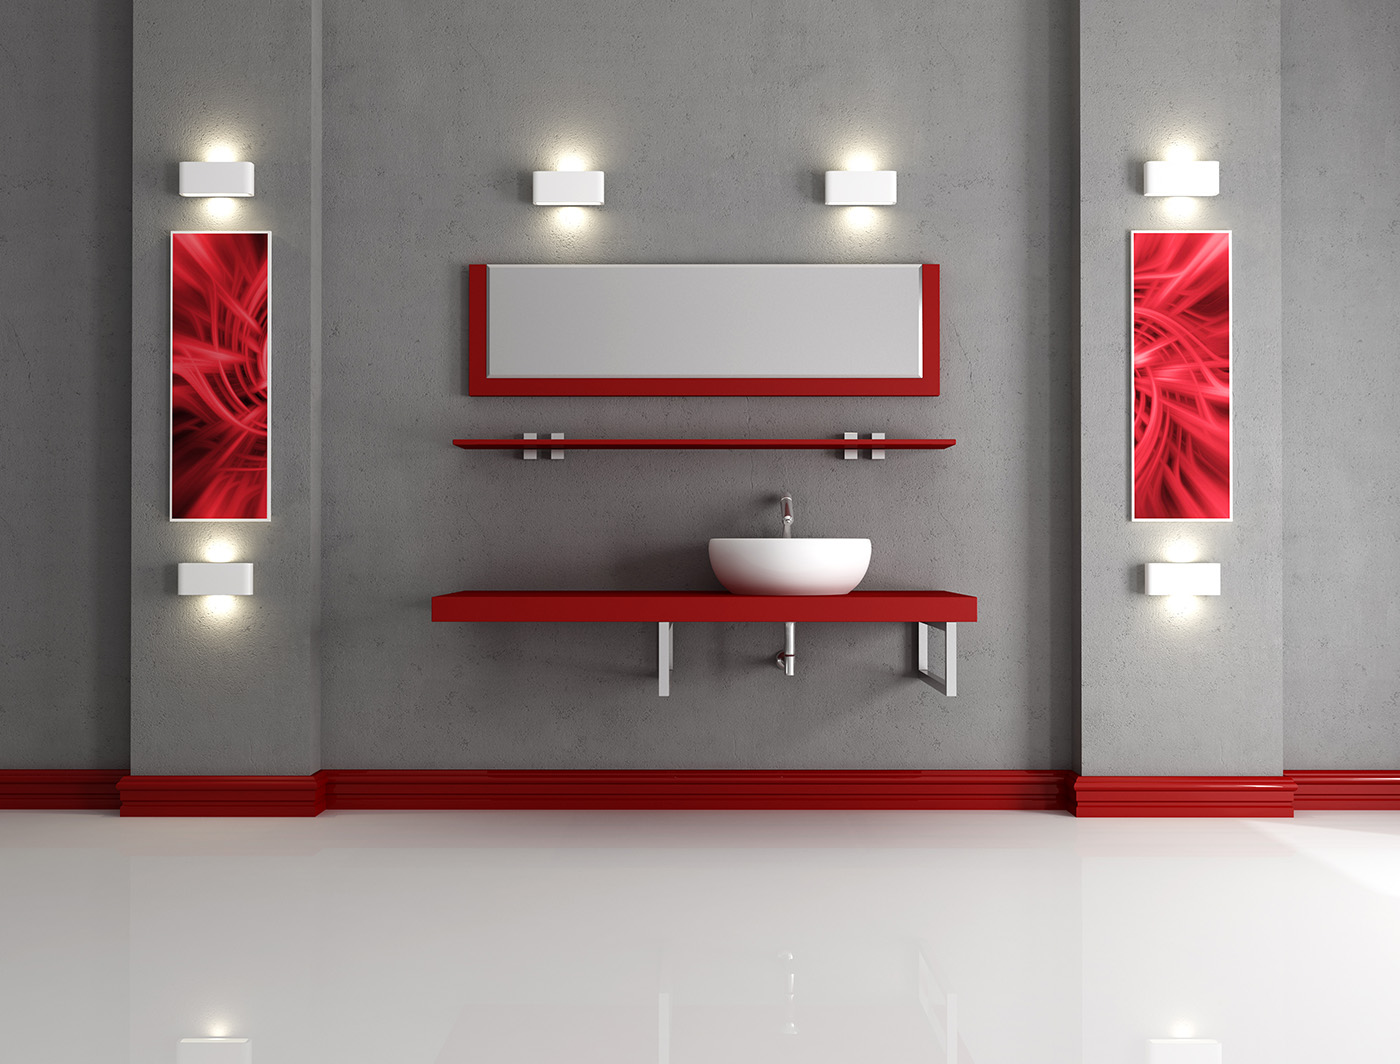 The lighting in the bathroom 50129